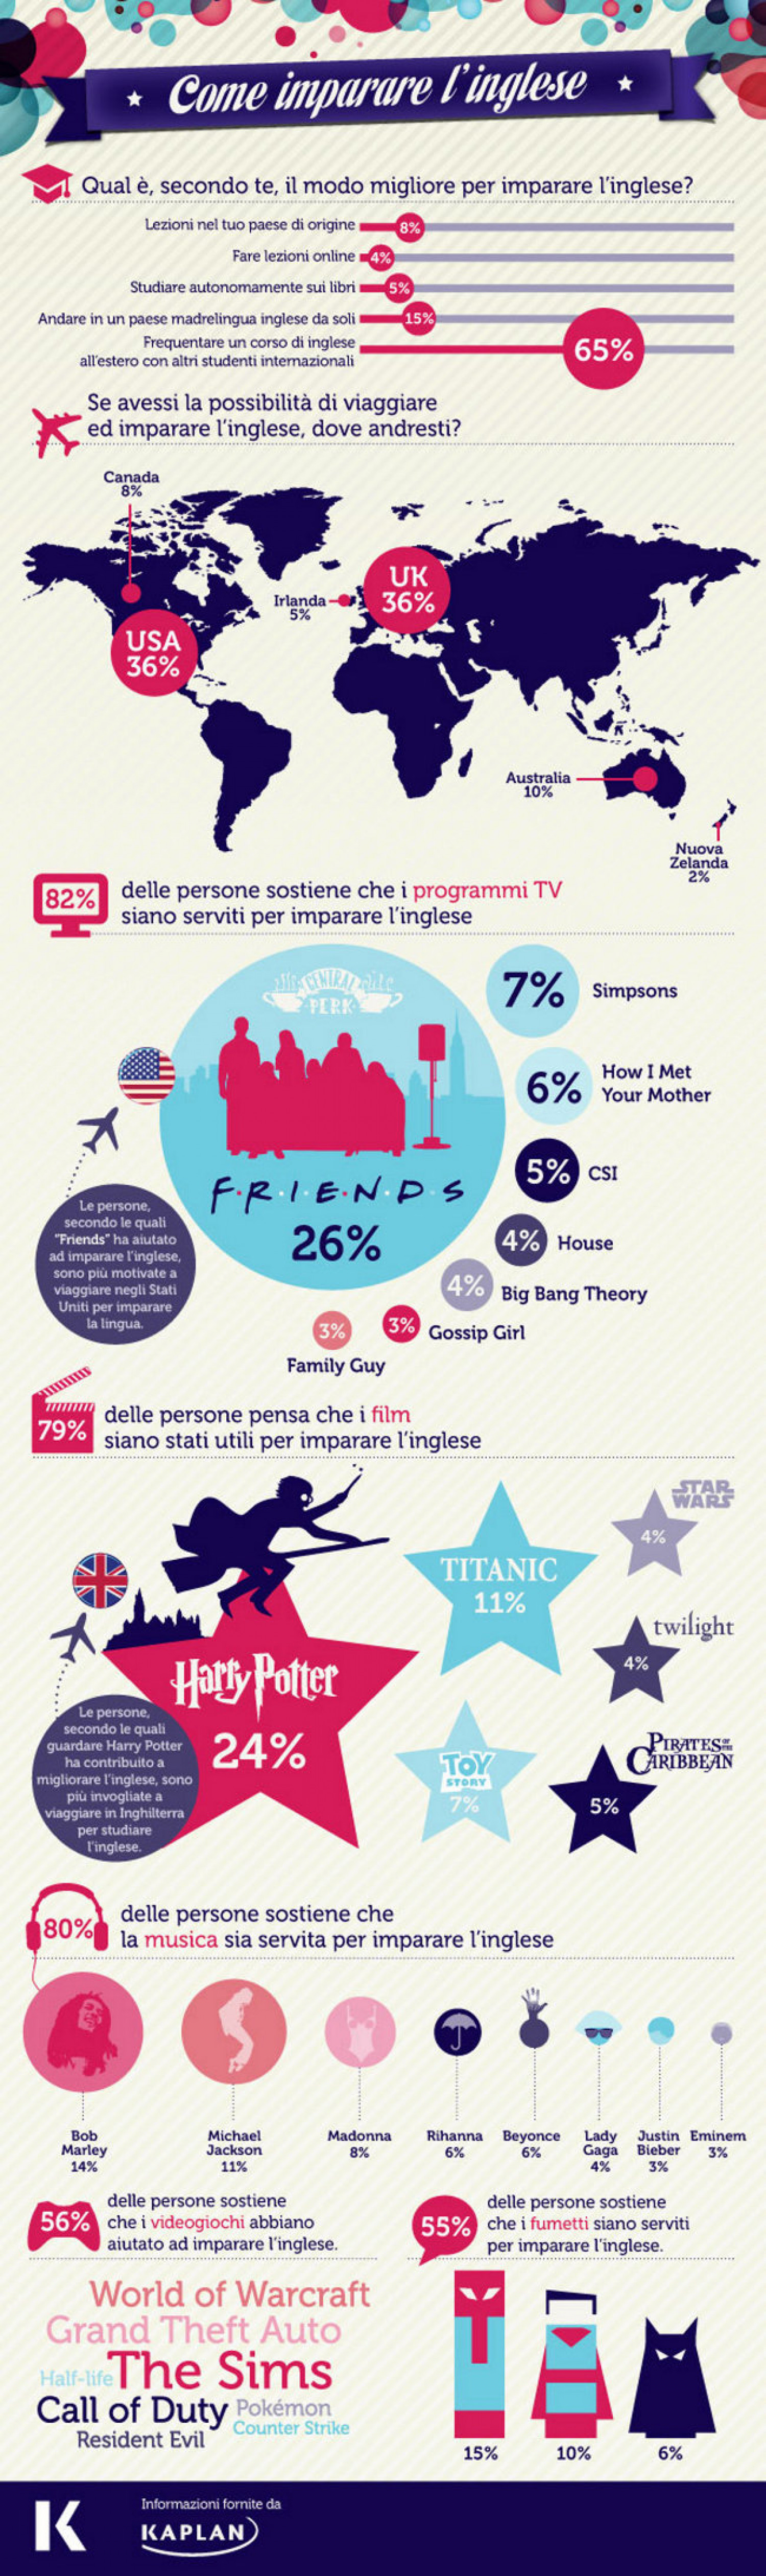 Come imparare l'inglese (How to Learn English) Infographic